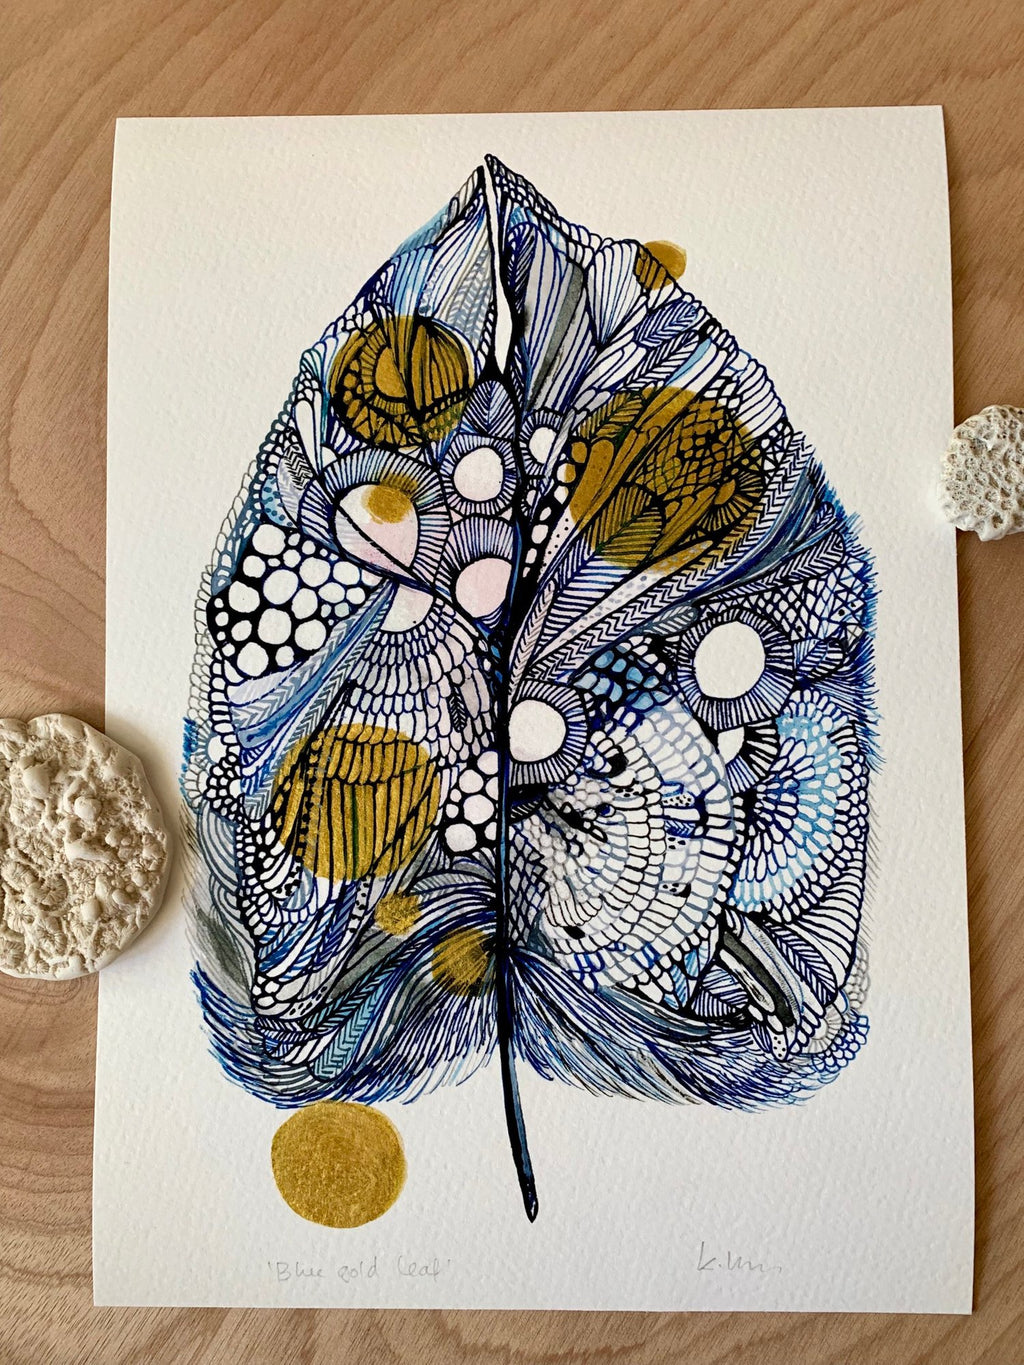 'Blue Gold Leaf' Print with Hand-painted Gold Detail